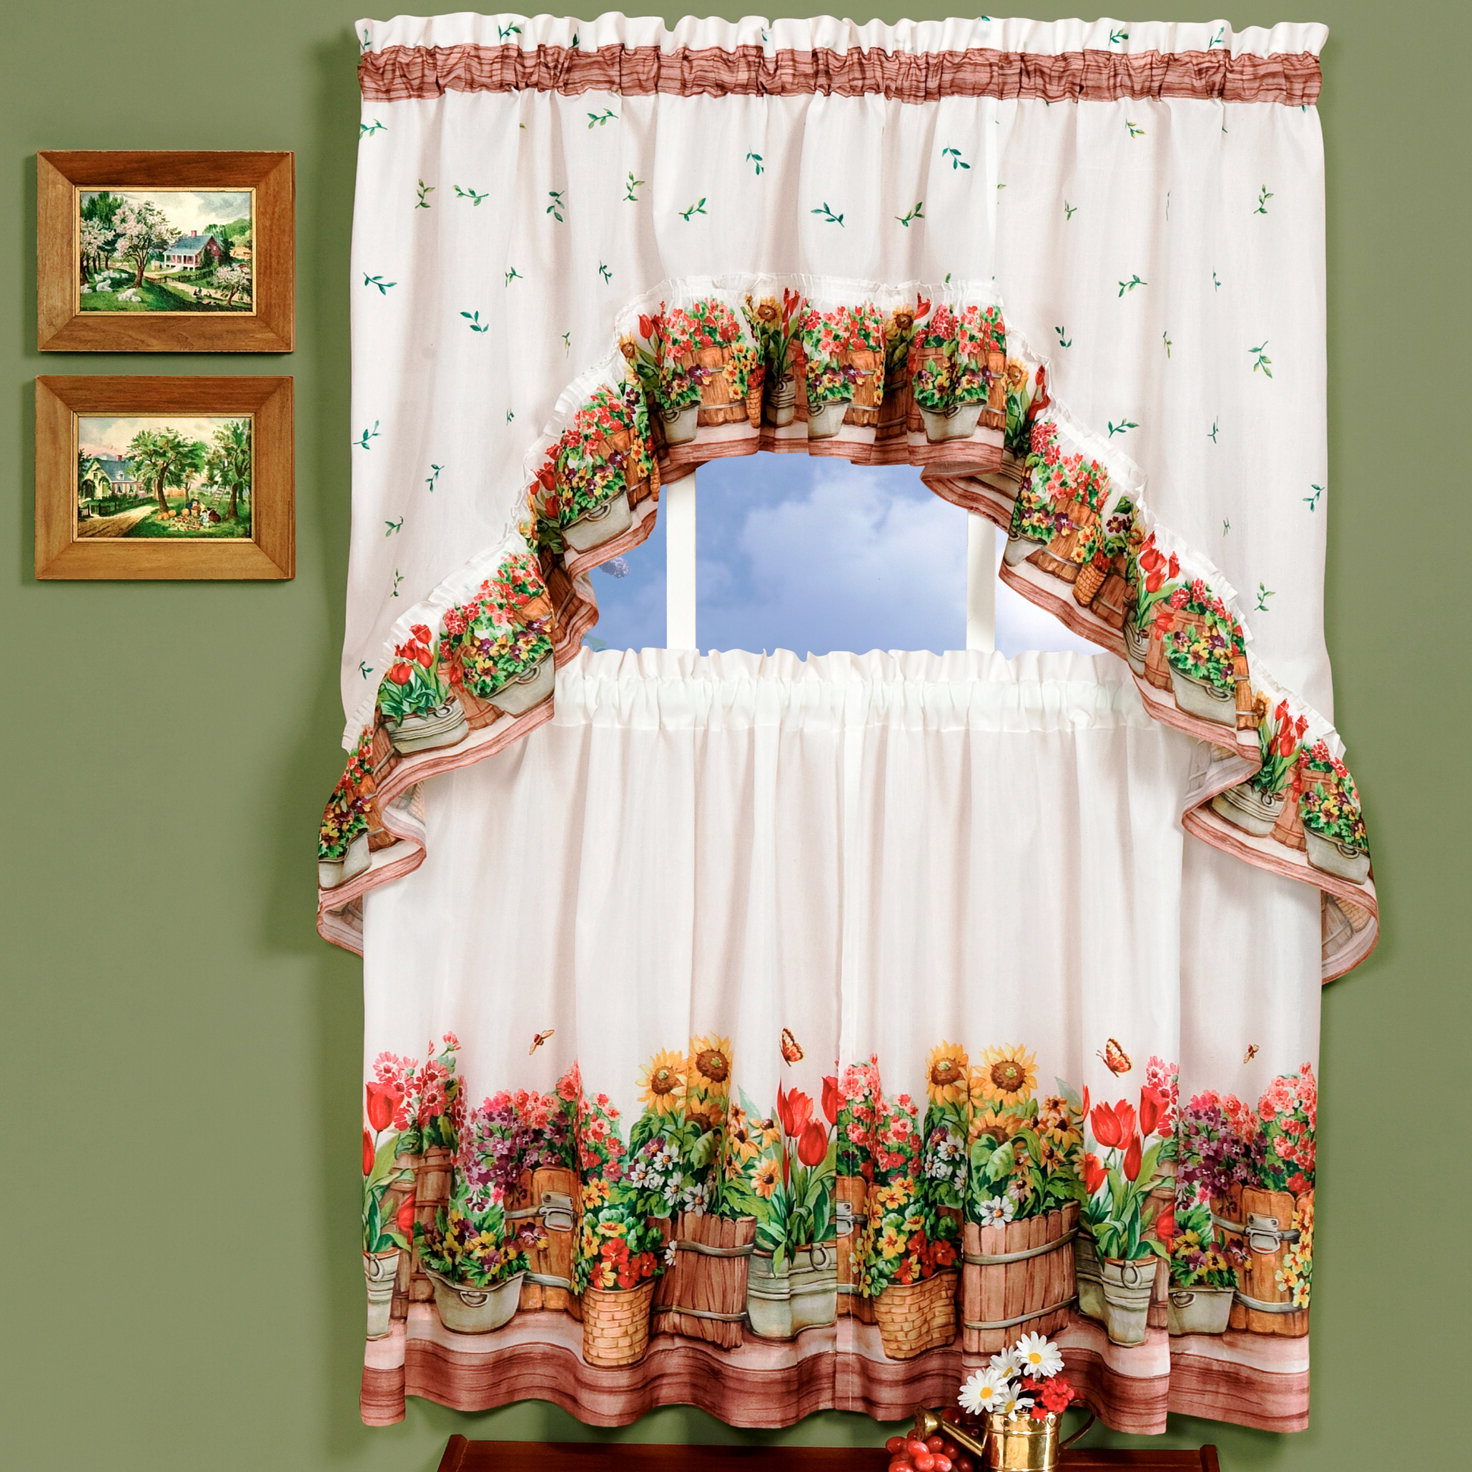 Country Garden Valance And Tier Set Pertaining To Widely Used Chardonnay Tier And Swag Kitchen Curtain Sets (View 9 of 20)